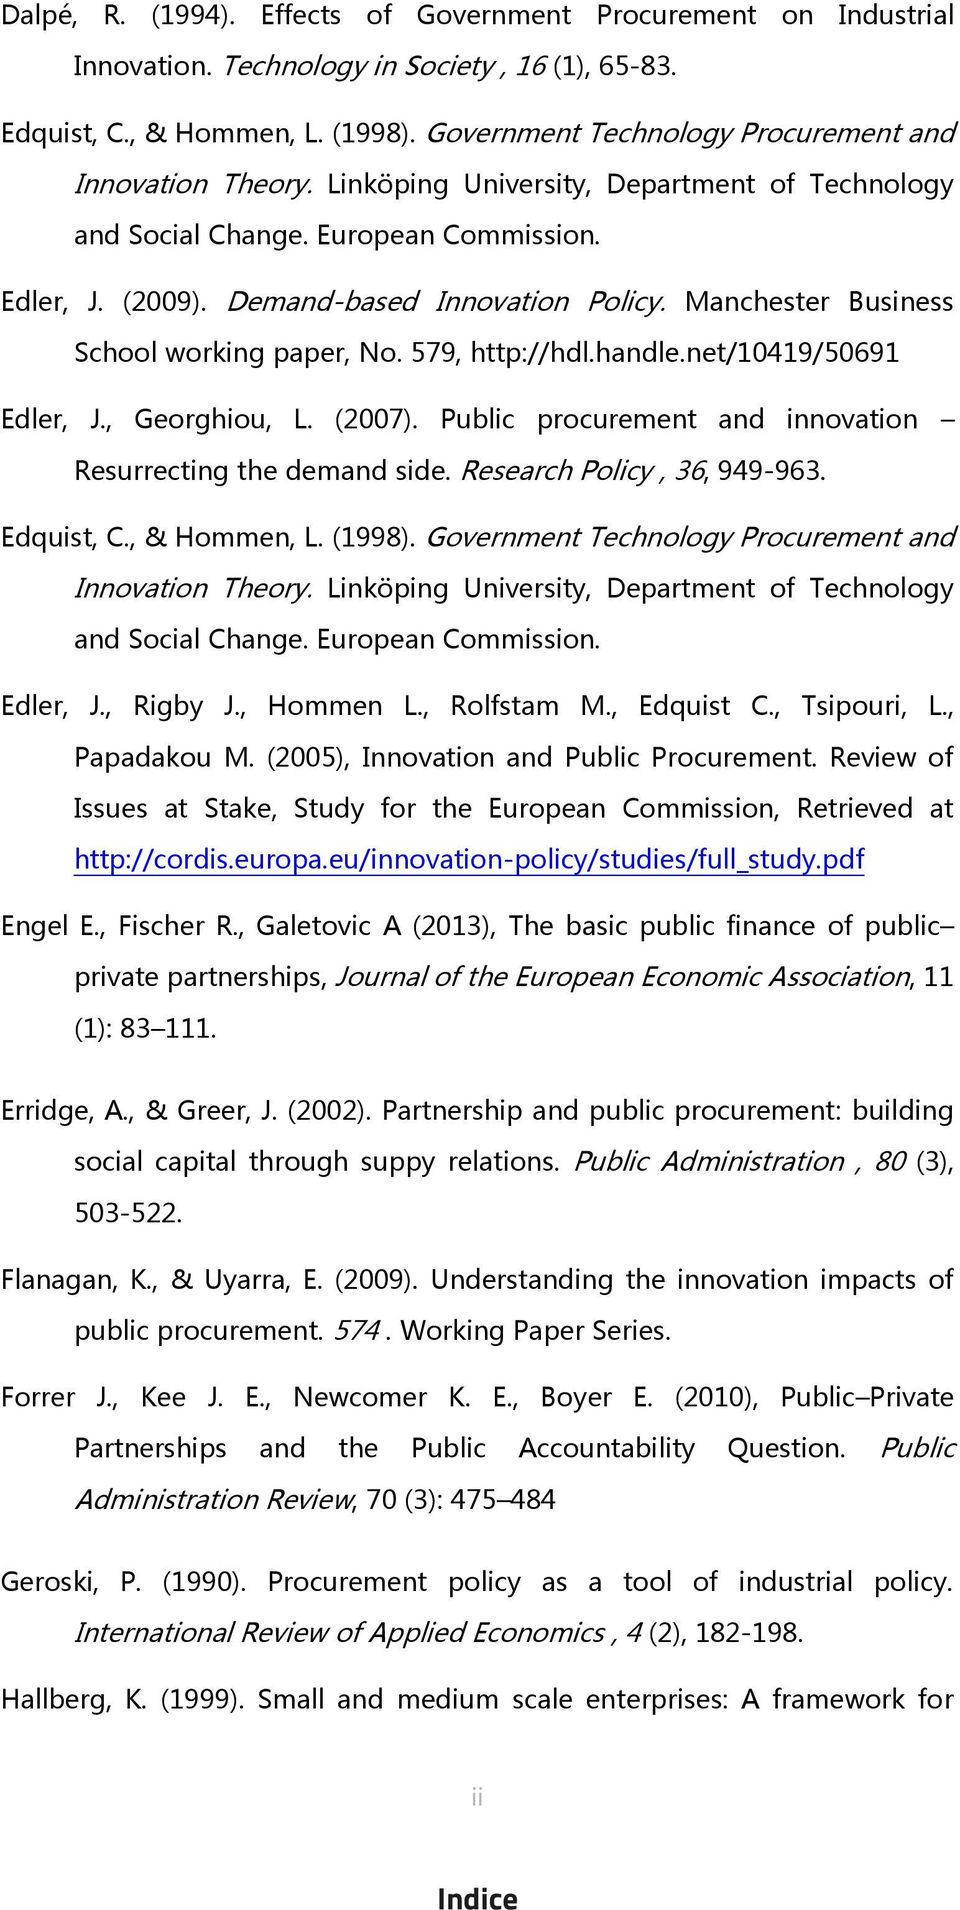 Manchester Business School working paper, No. 579, http://hdl.handle.net/10419/50691 Edler, J., Georghiou, L. (2007). Public procurement and innovation Resurrecting the demand side.